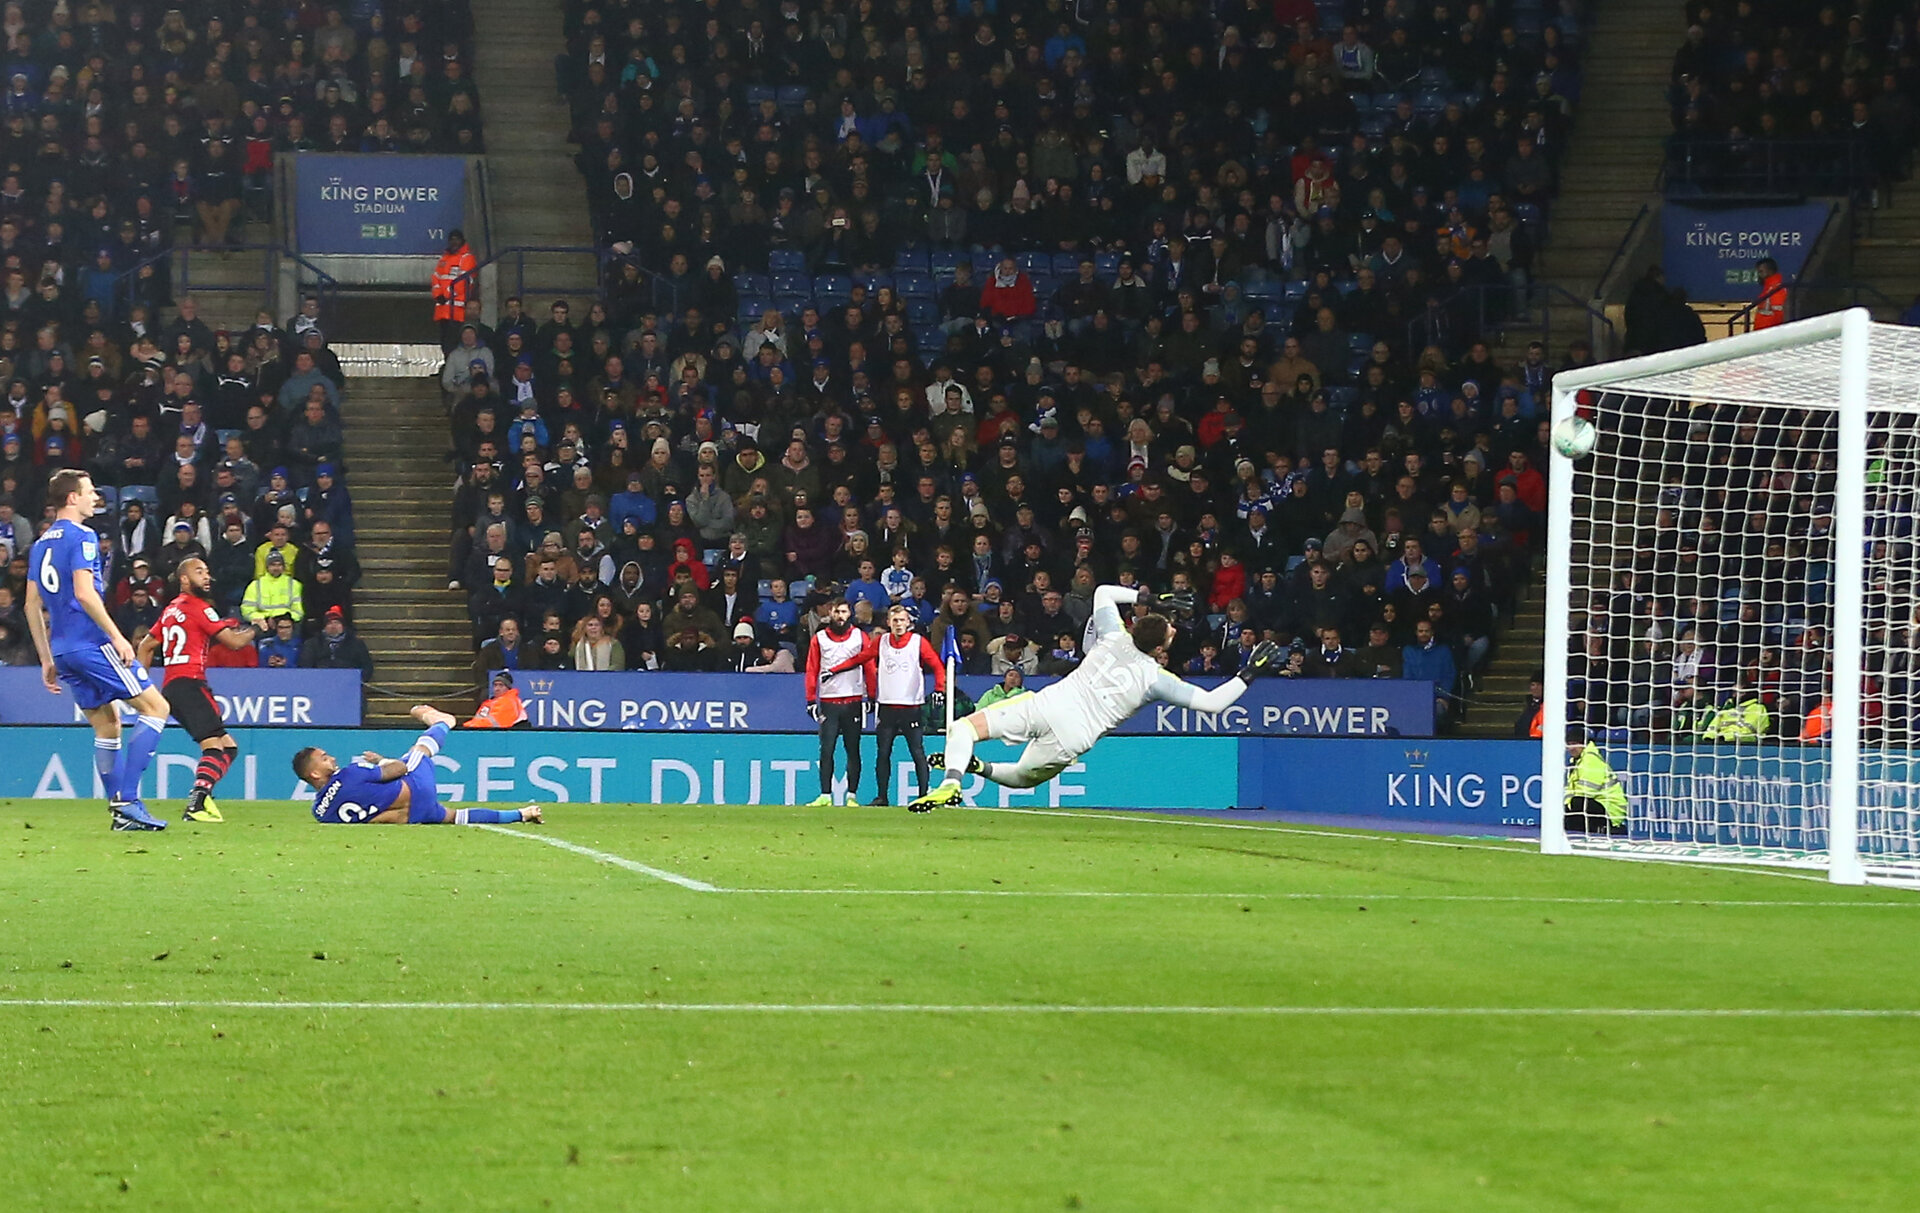 LEICESTER, ENGLAND - NOVEMBER 27: Nathan Redmond of Southampton hits the crossbar during the Carabao Cup Fourth Round match between Leicester City and Southampton at The King Power Stadium on November 27th, 2018 in Leicester, England. (Photo by Matt Watson/Southampton FC via Getty Images)